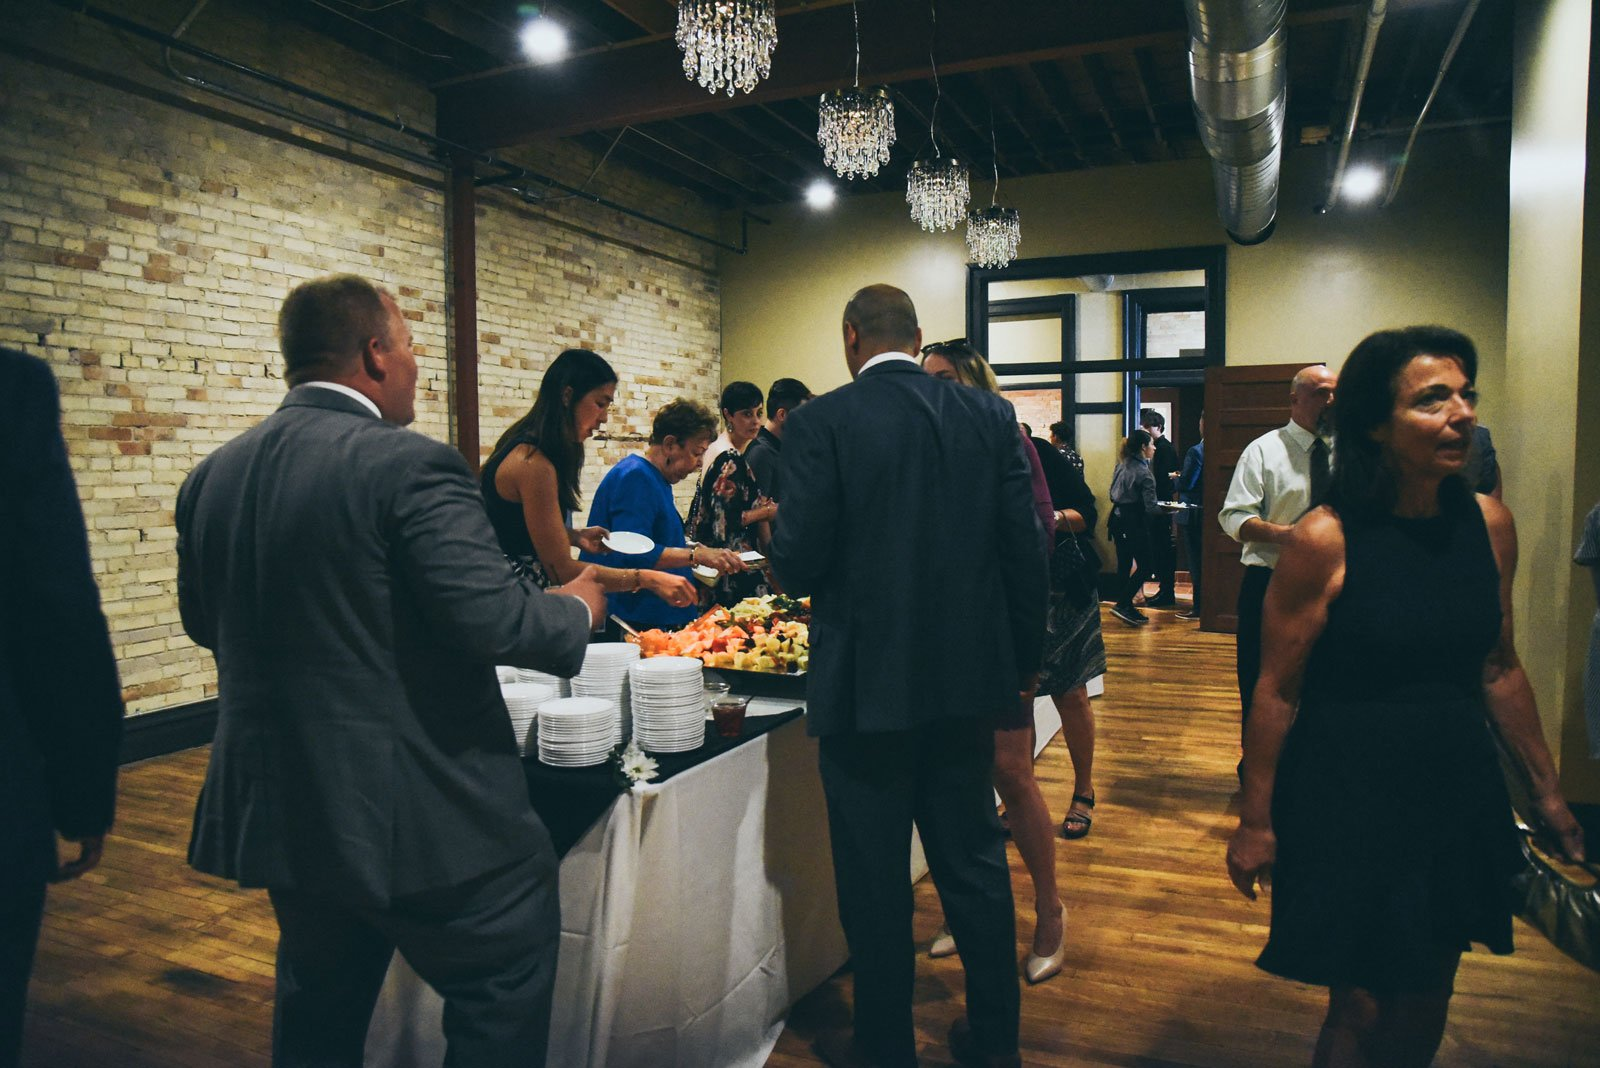 food-line-at-a-wedding-reception-in-the-Harric-Building